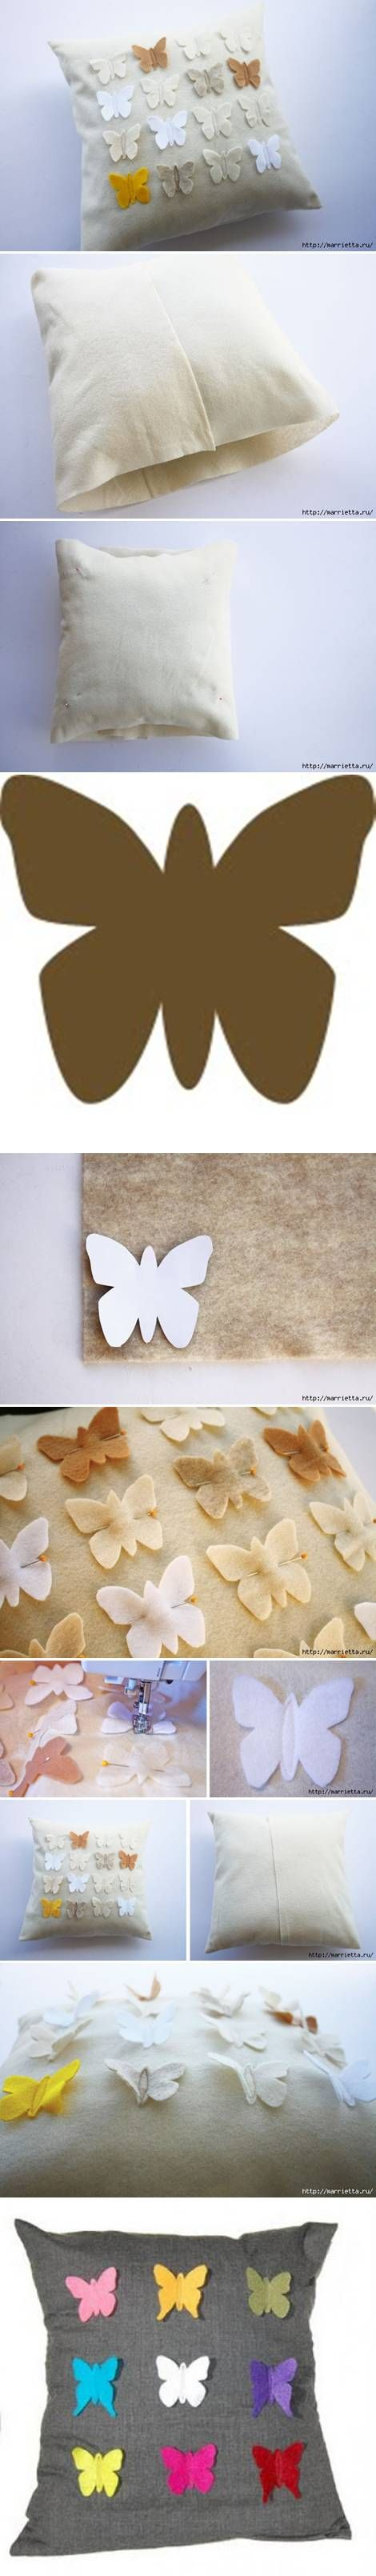 DIY Butterfly Pillow Cover DIY Projects